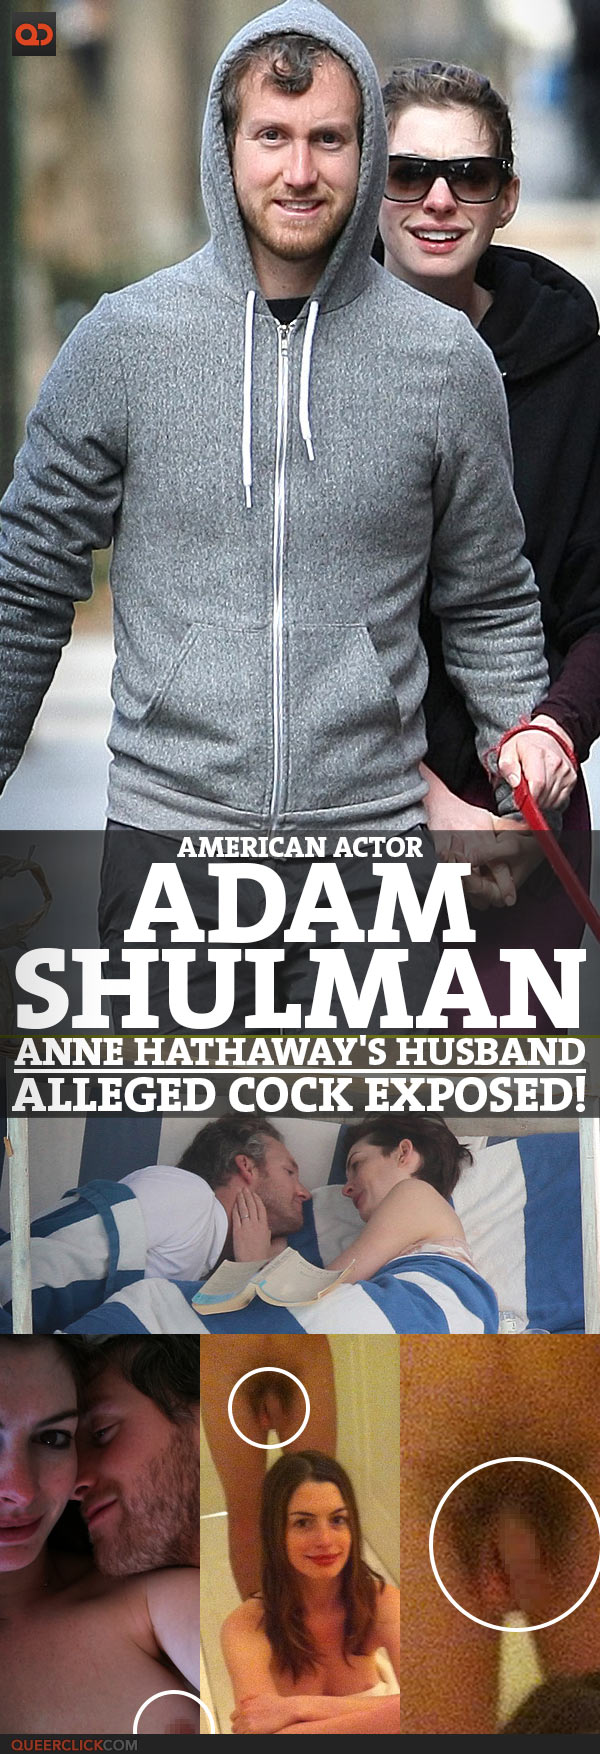 Adam Shulman, American Actor And Anne Hathaway's Husband, Alleged Cock Exposed!